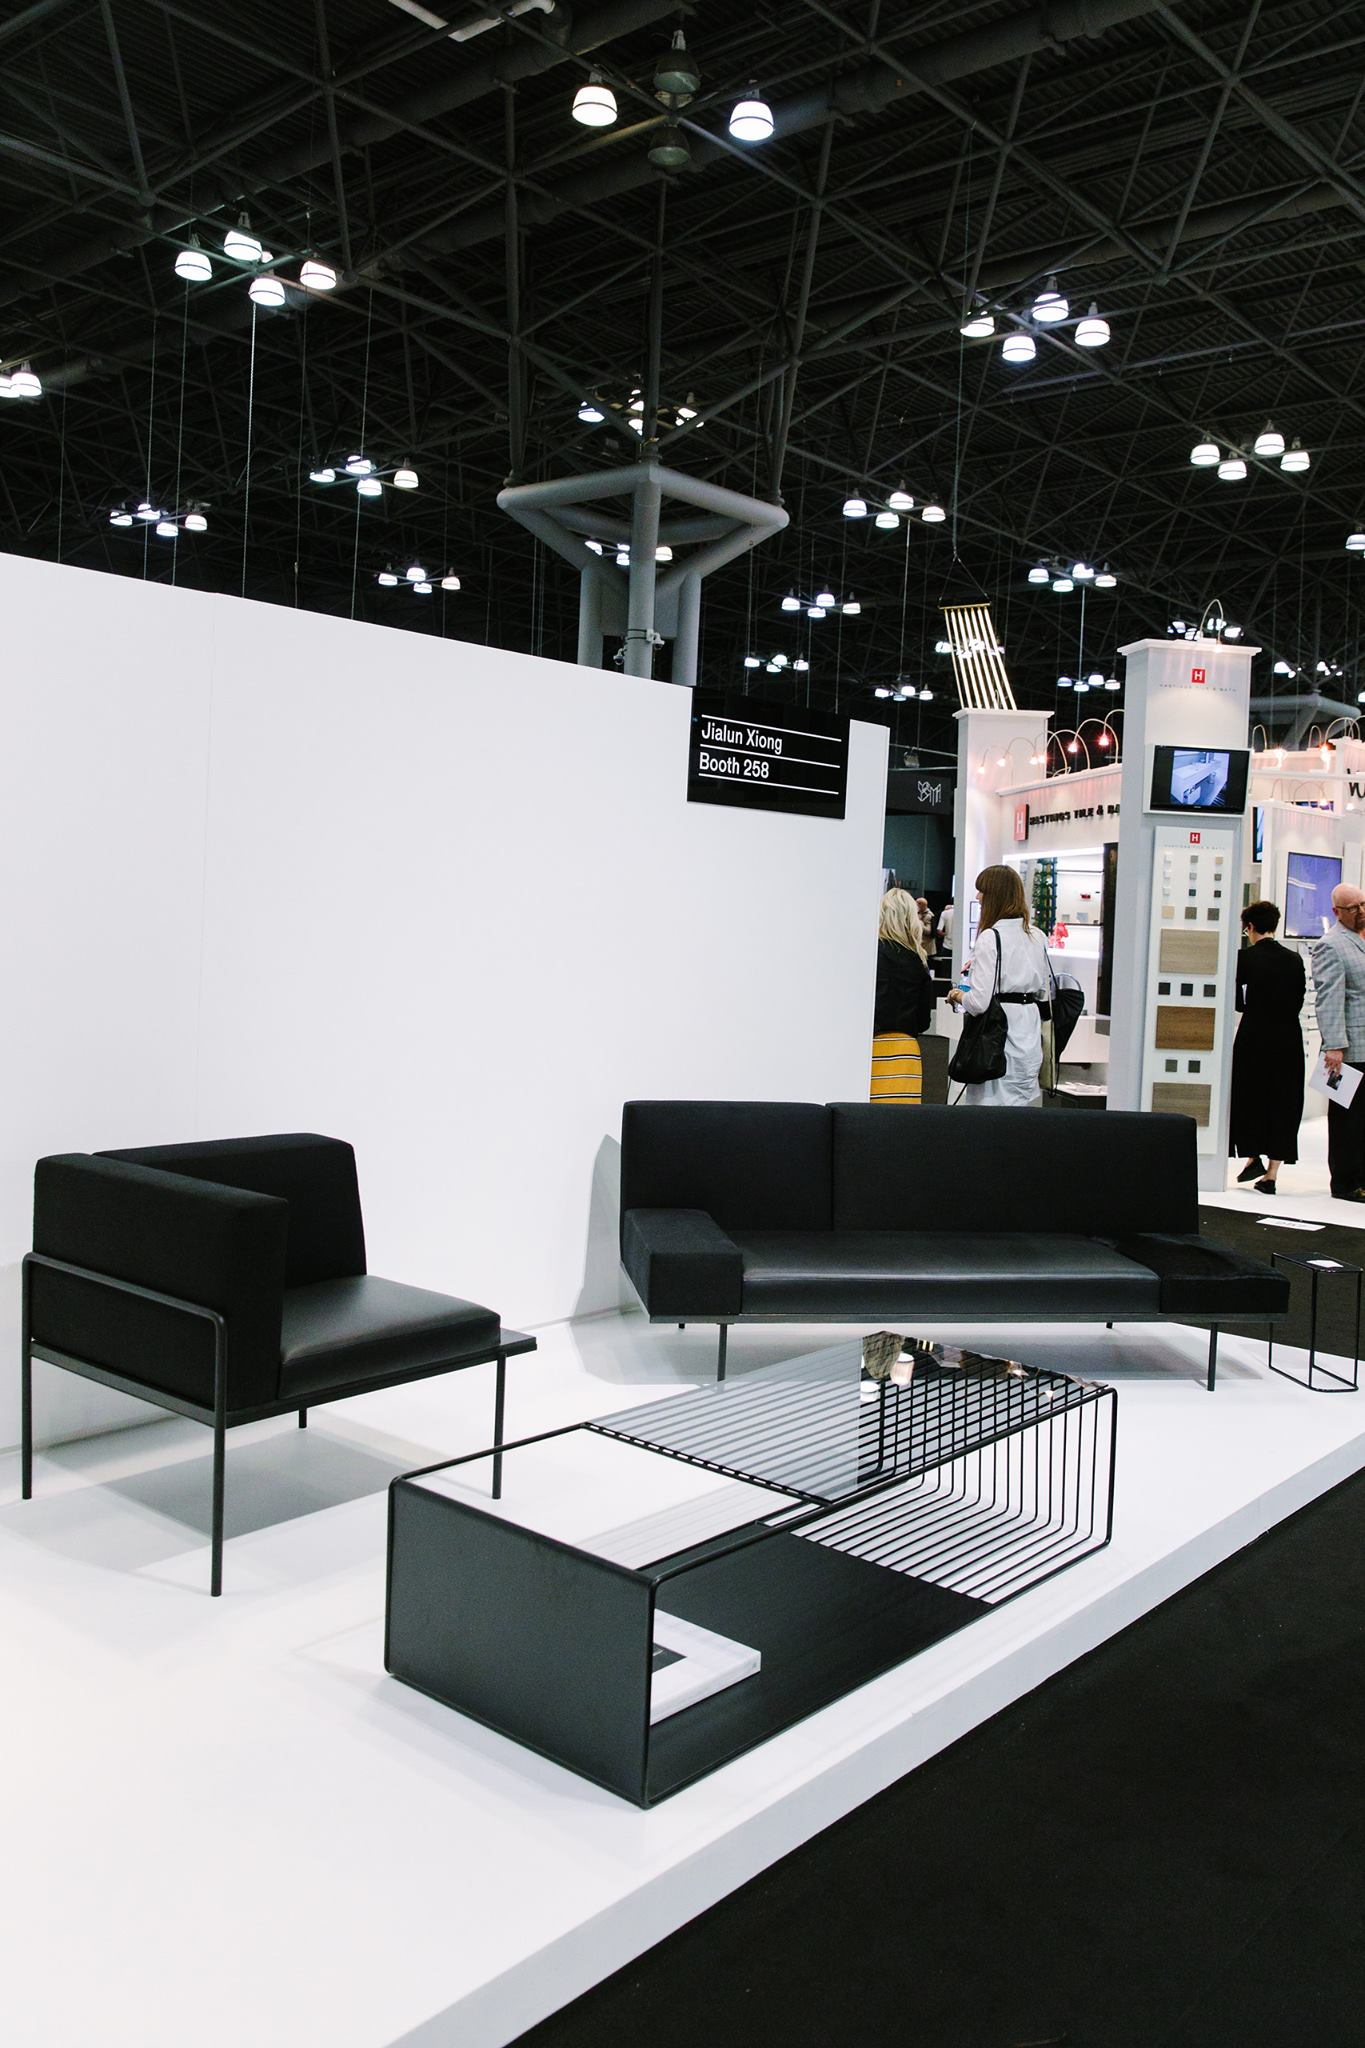 Artcenter Dominates Icff Studio 2018 Competition At New York Design Week Artcenter News